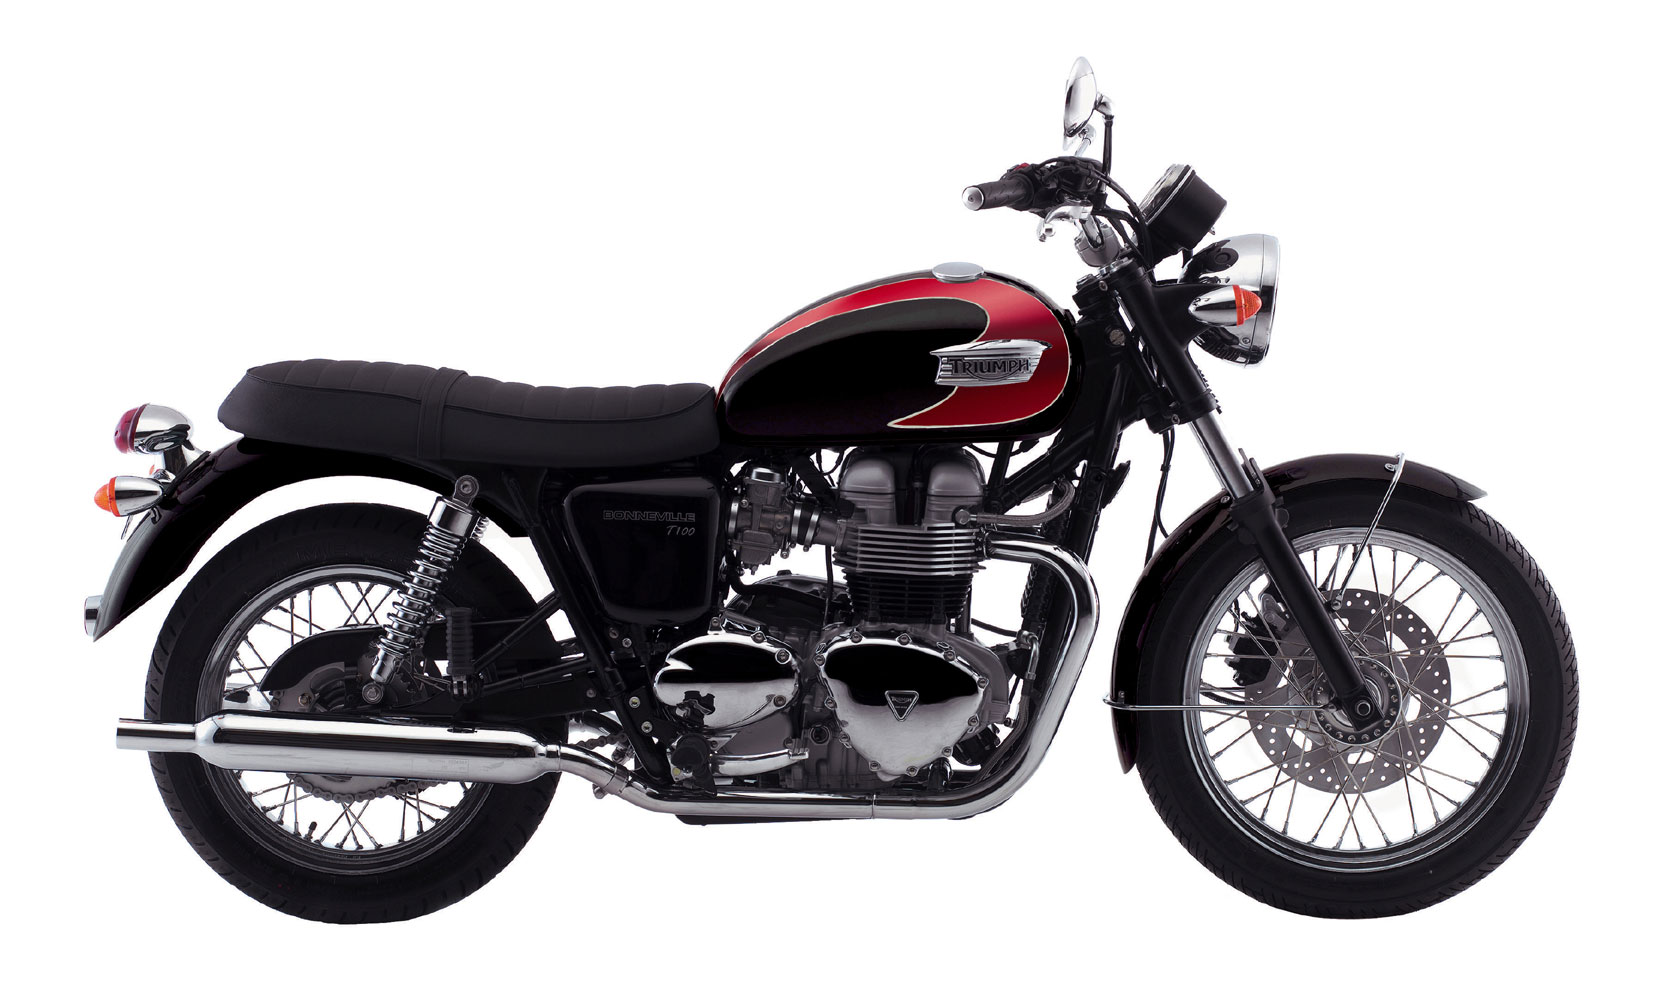 2008 triumph bonneville t100. Black Bedroom Furniture Sets. Home Design Ideas